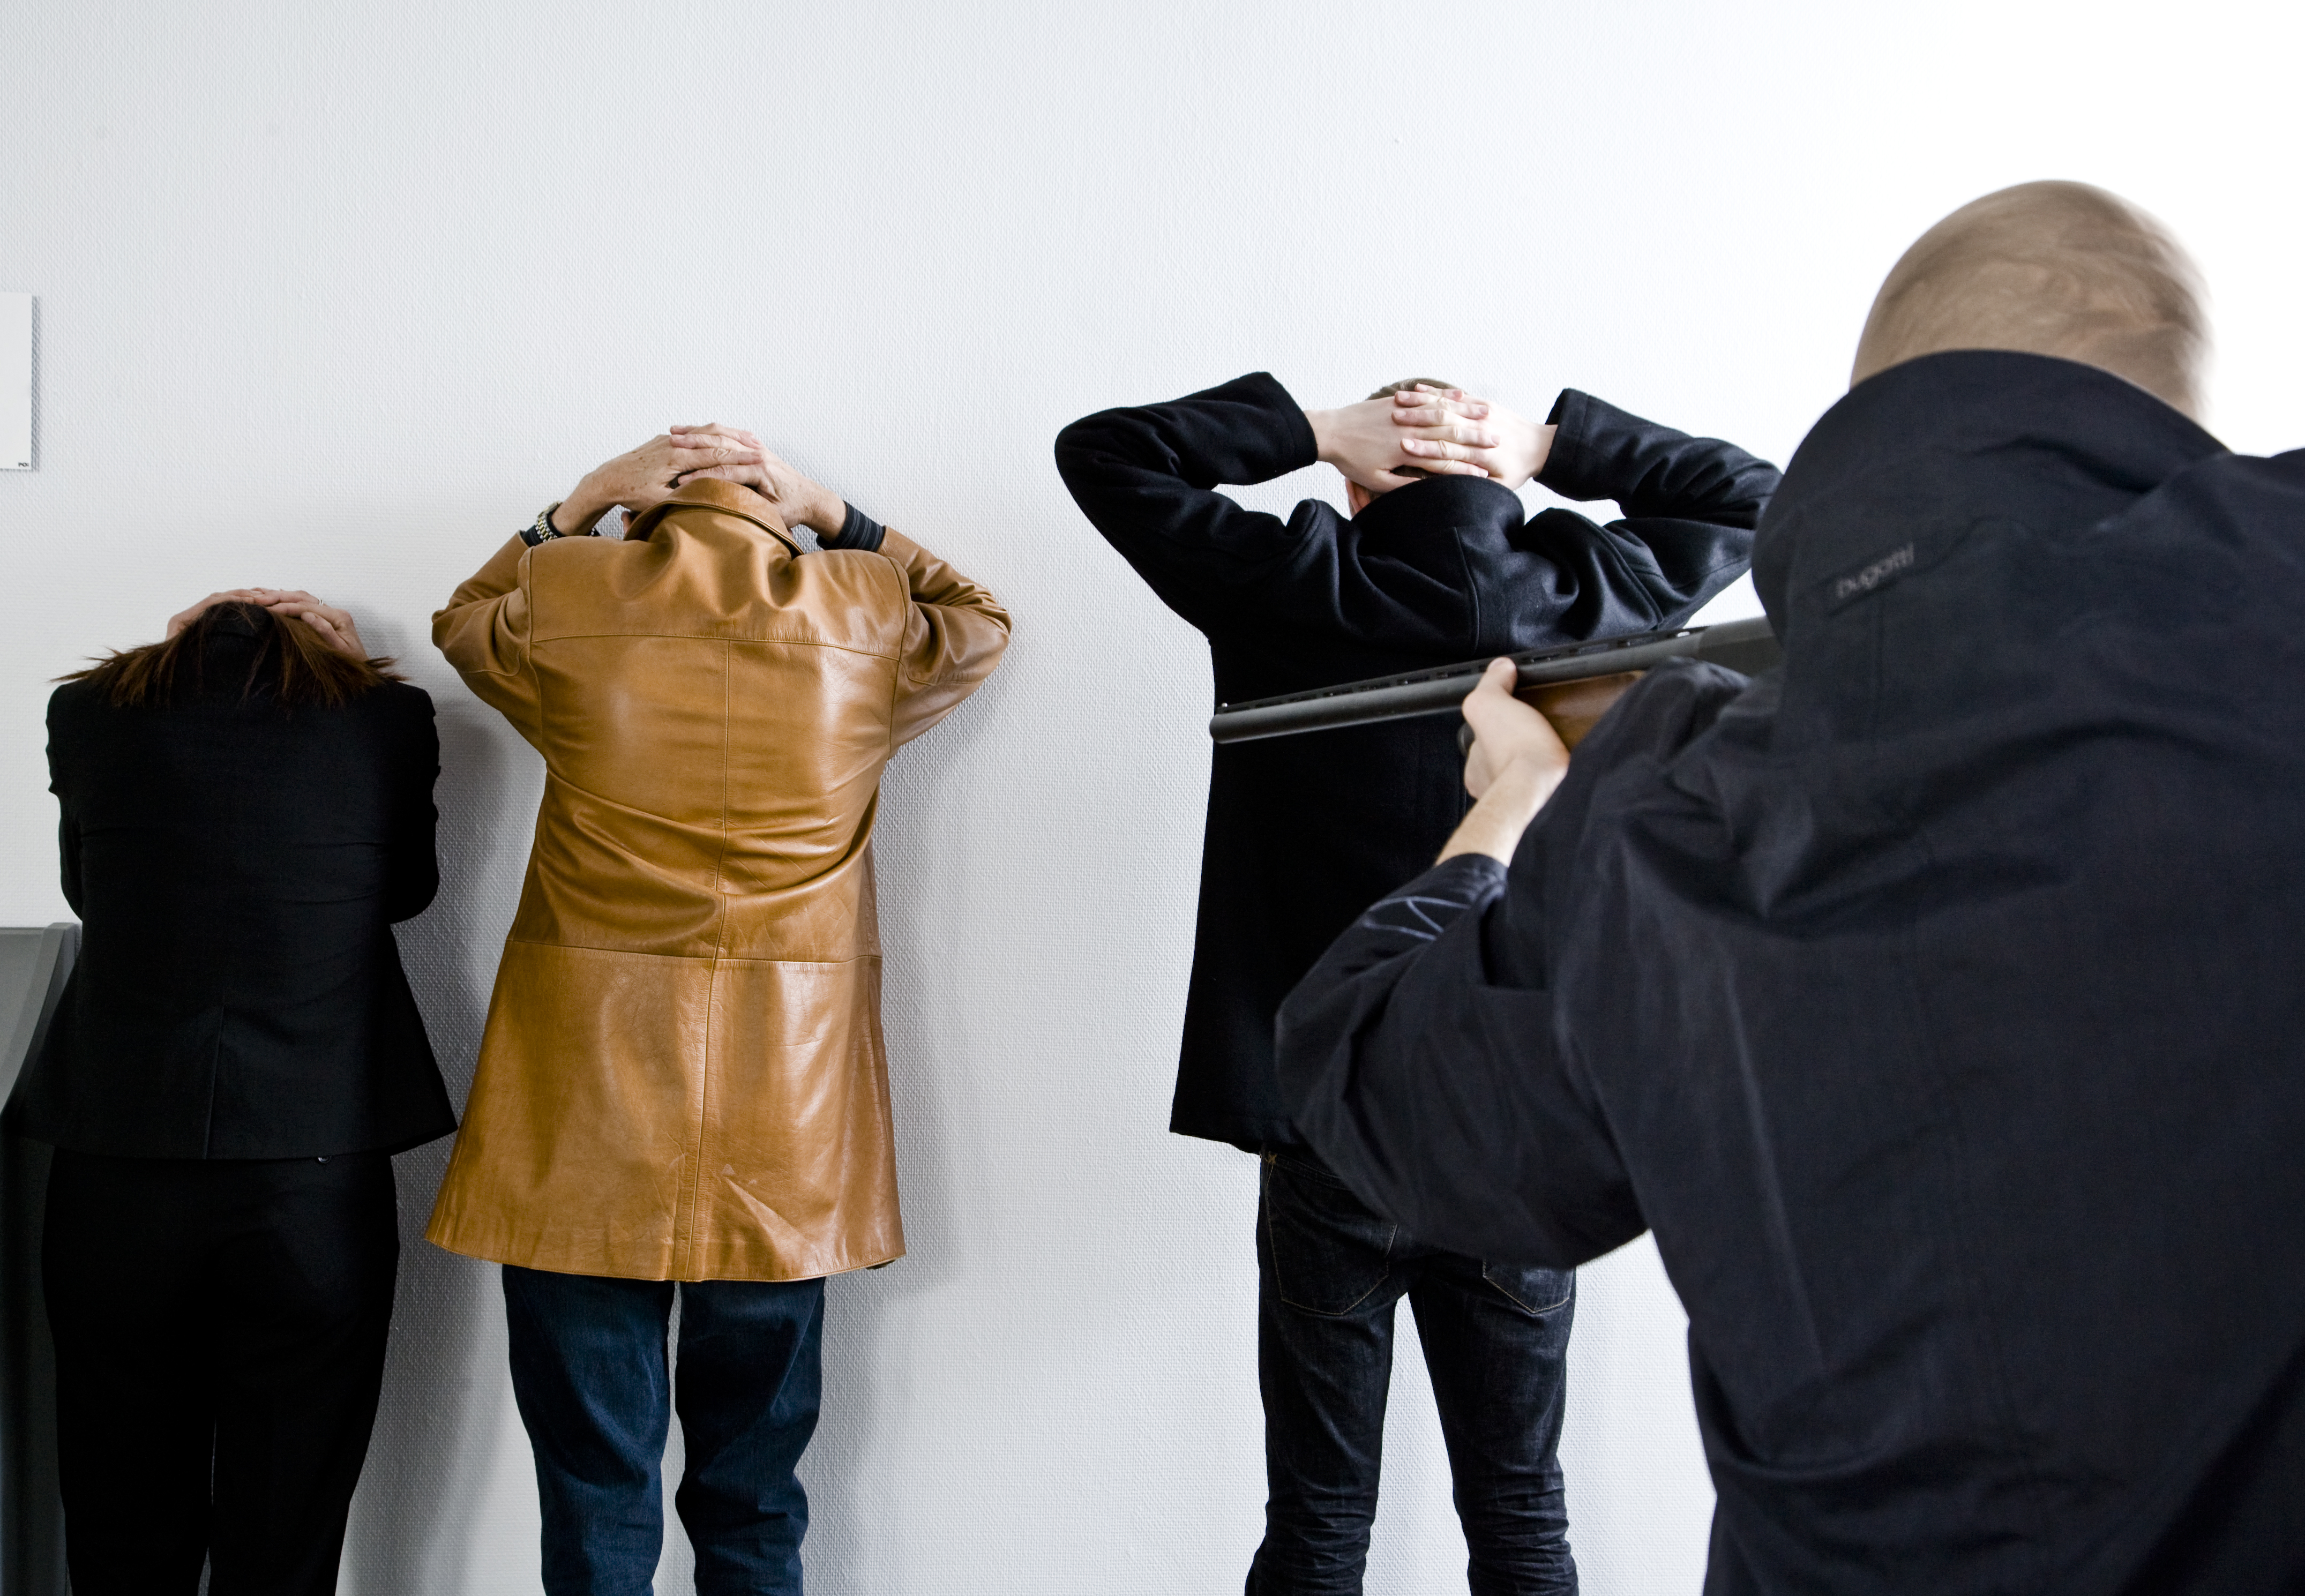 Three people standing againt the wall with their hands behind their head, while another is pointing at them with a gun